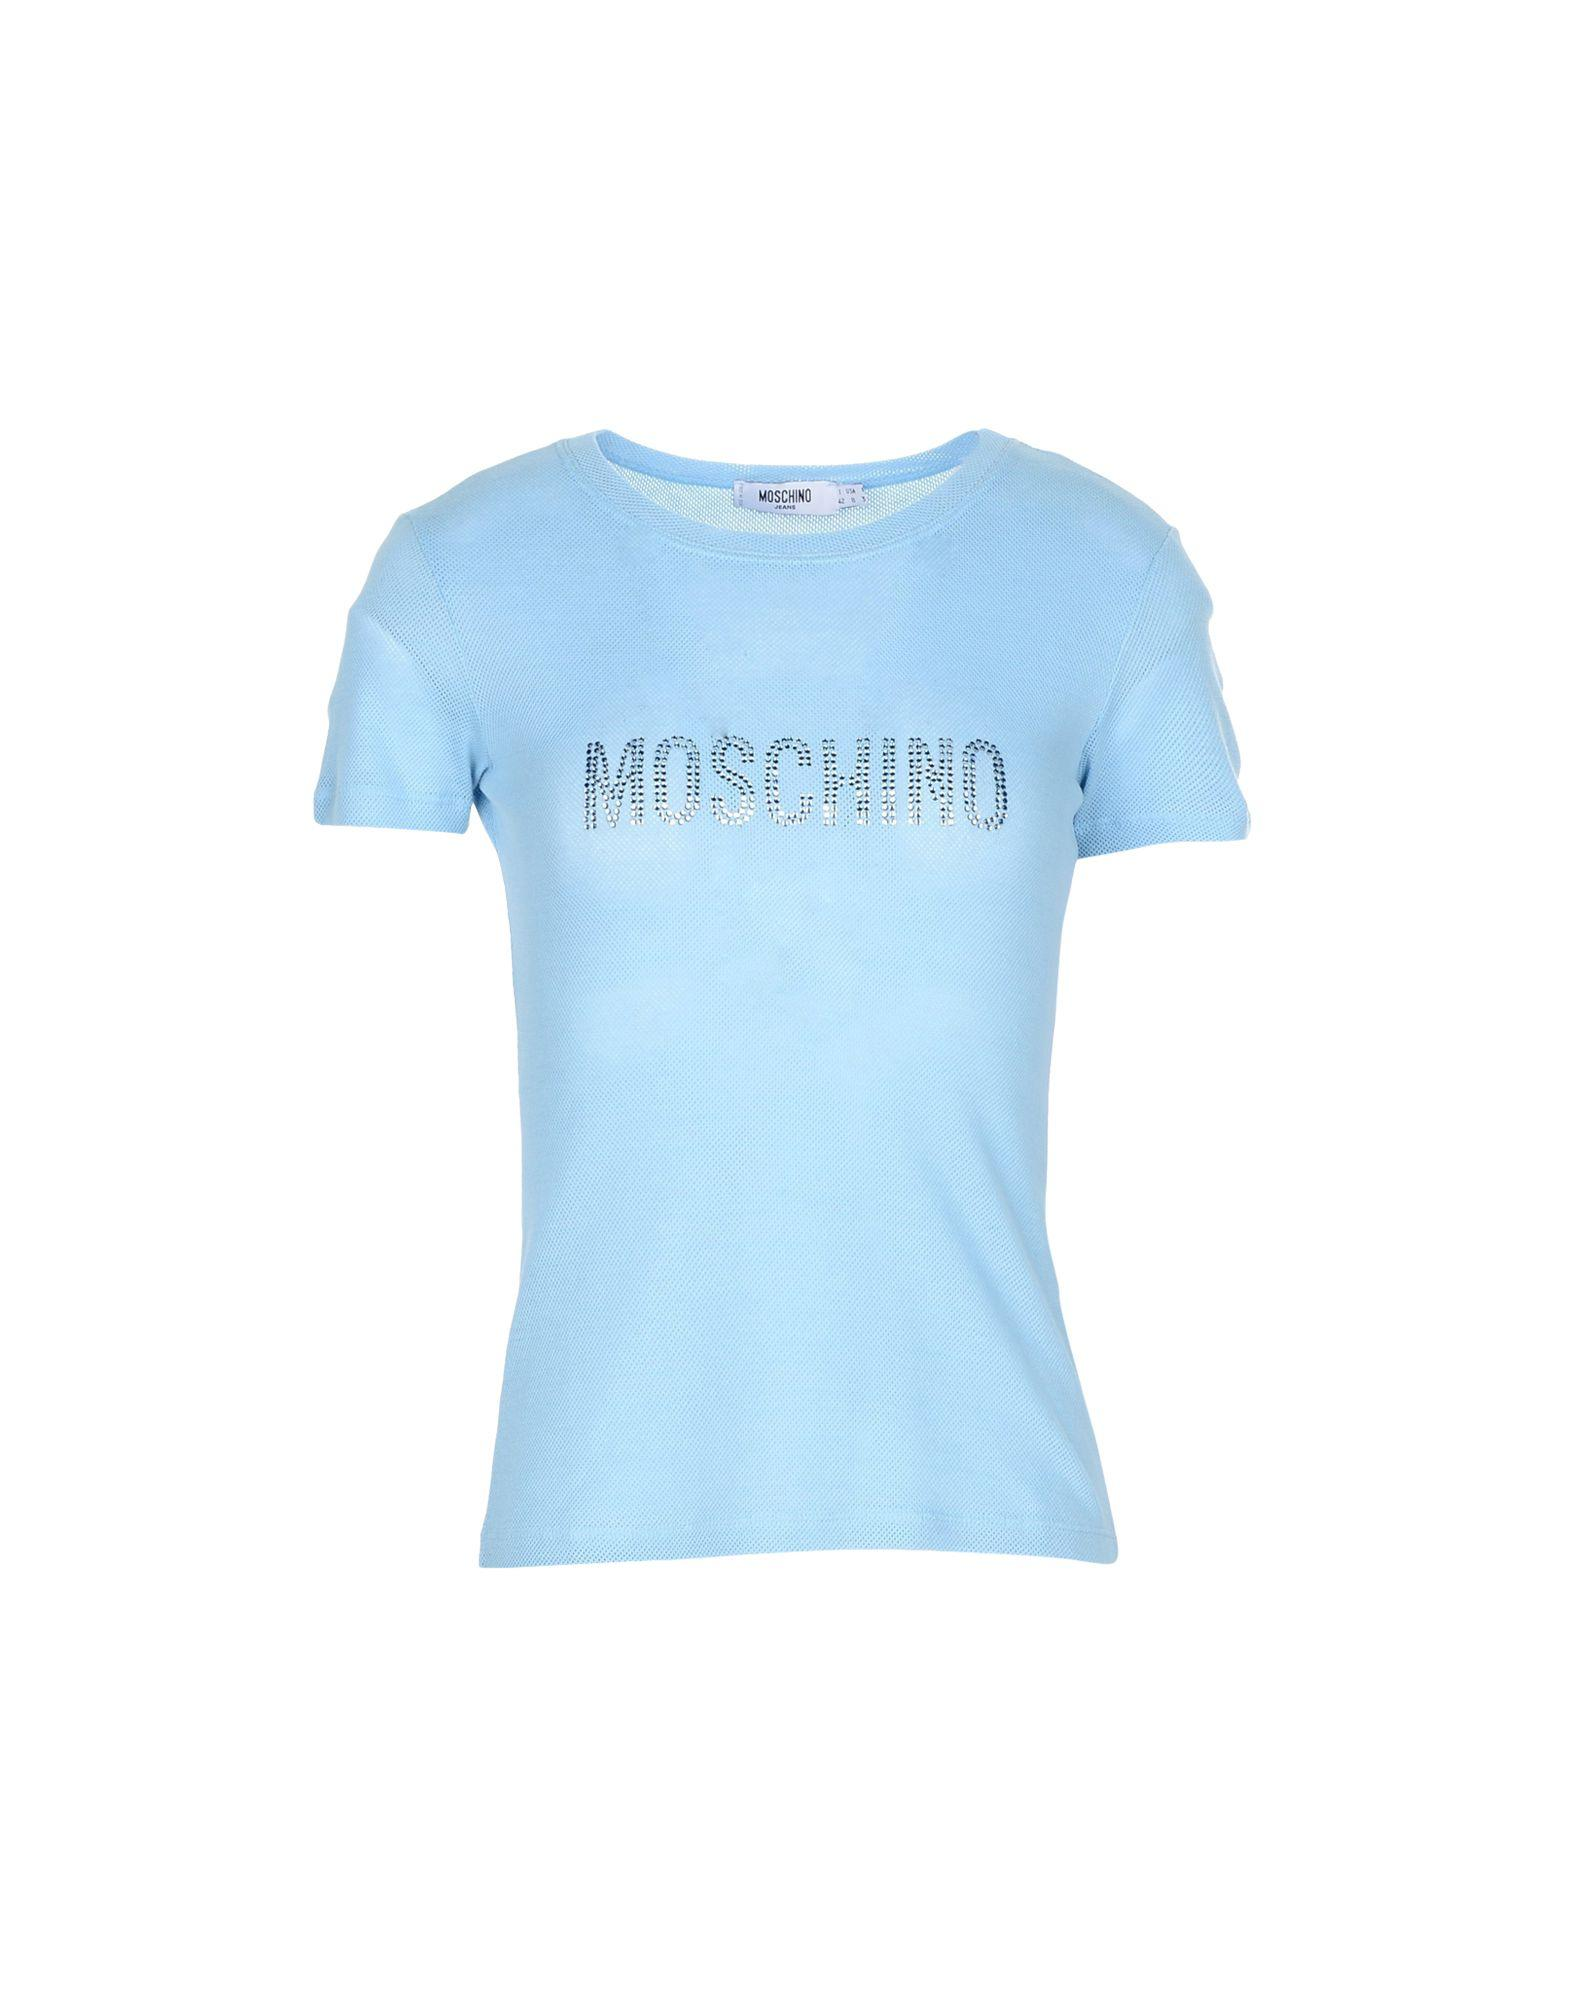 Moschino T-shirts In Sky Blue